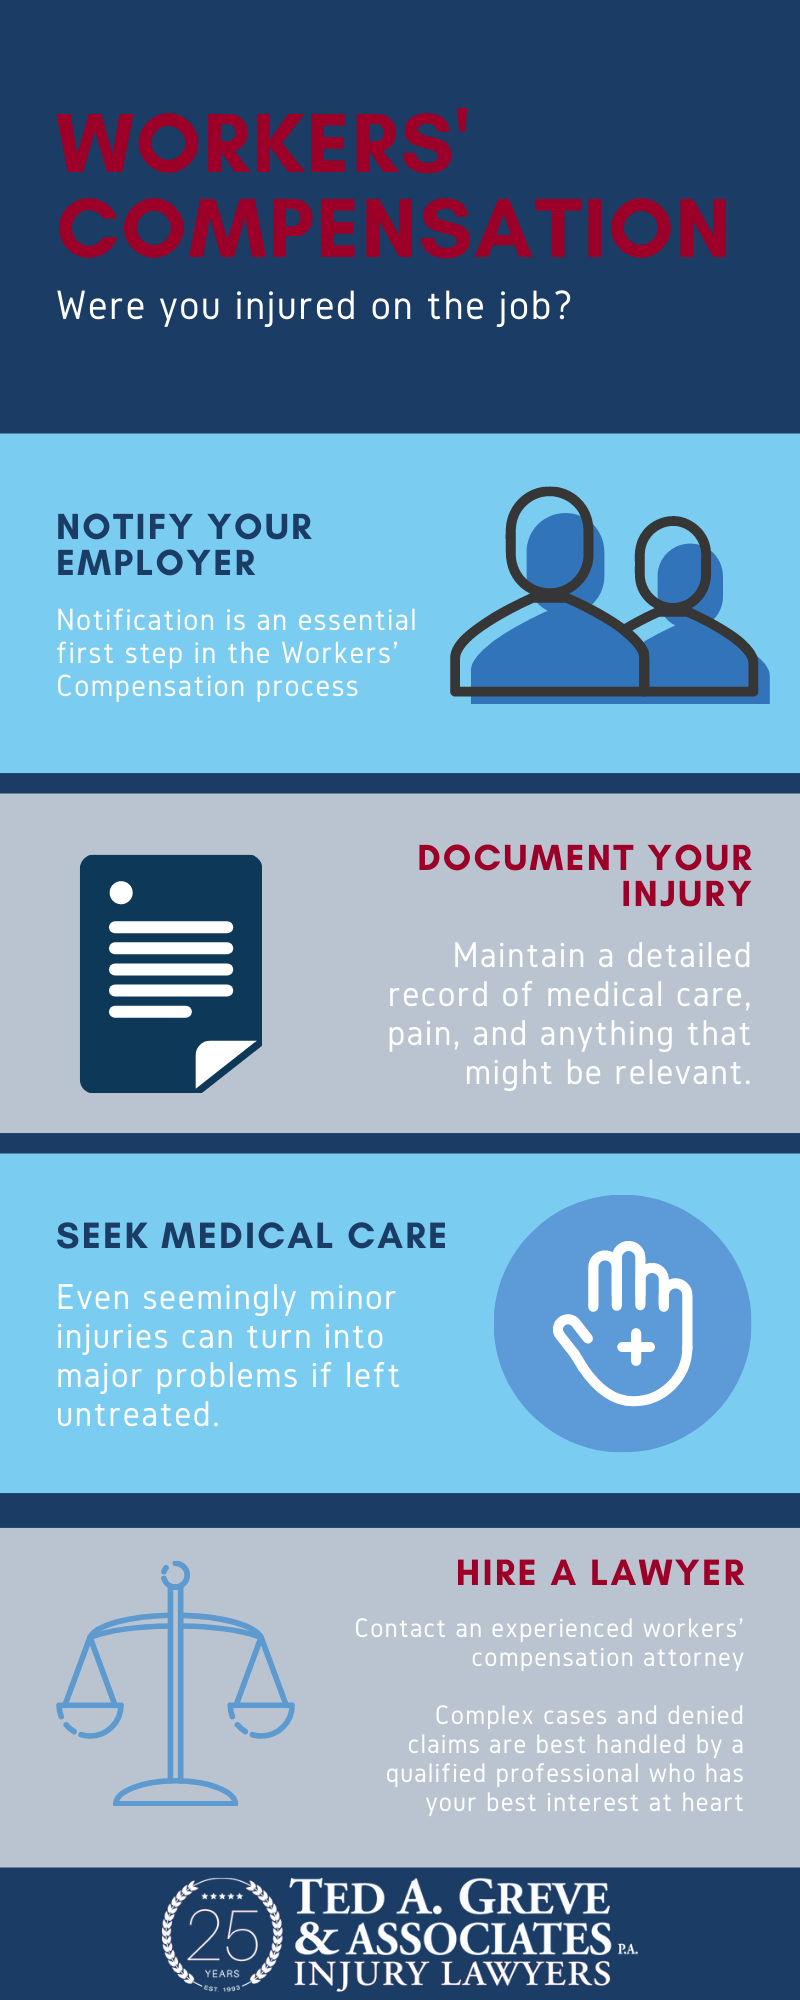 Ted Greve Charlotte Workers Comp Infographic